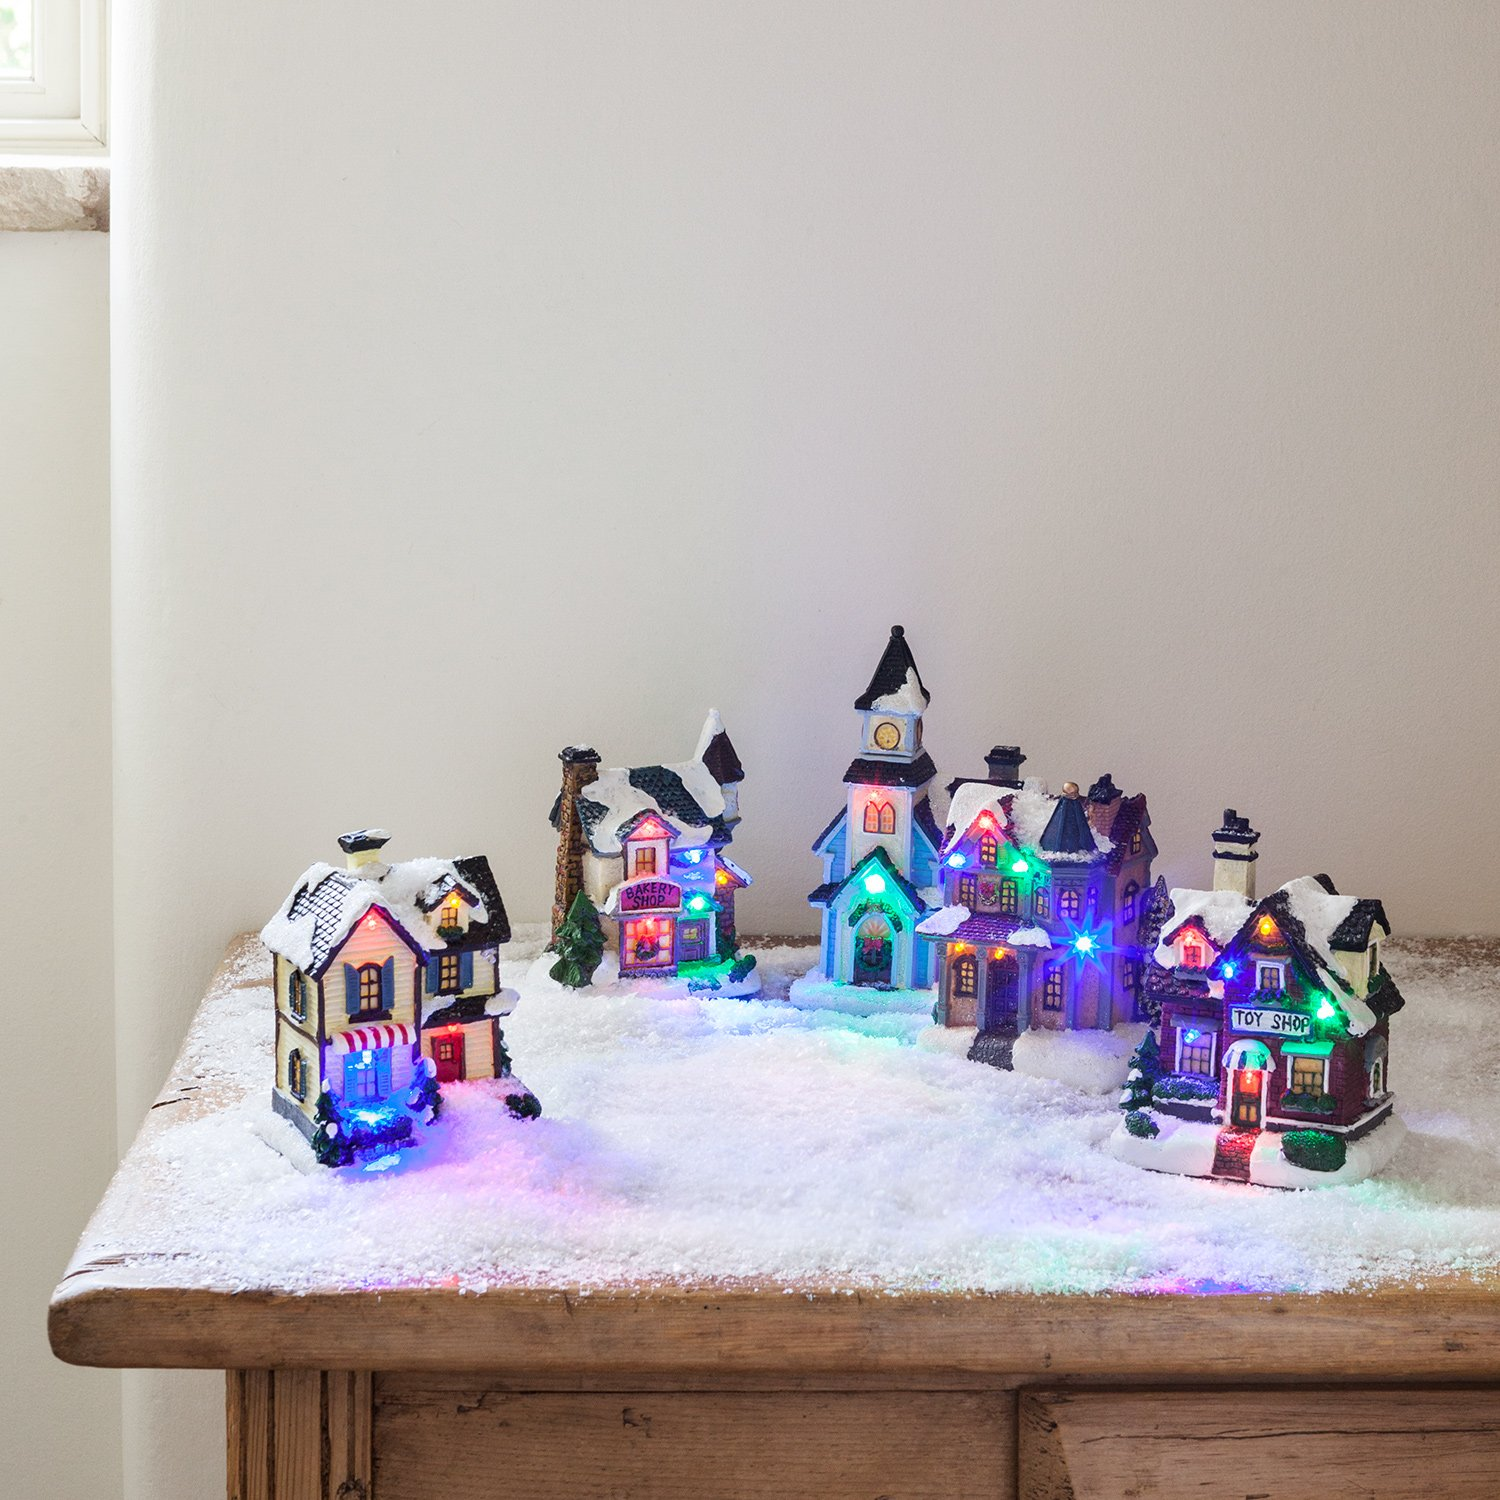 Battery Operated LED Light Up Christmas Village Scene by Lights4fun, Inc.